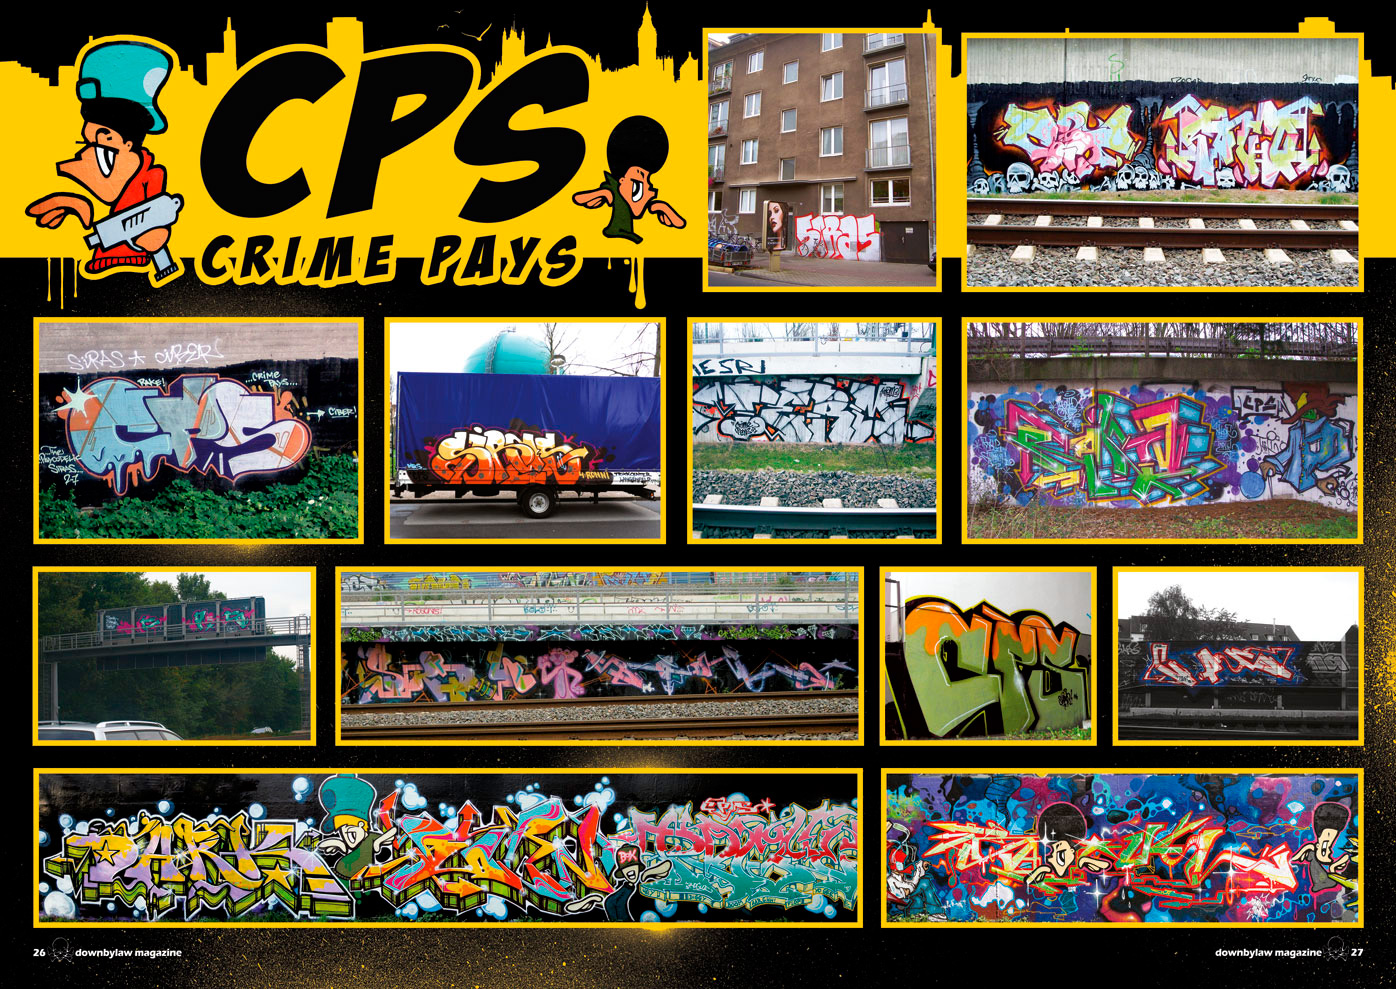 downbylaw_magazine_8_cps_crew_graffiti